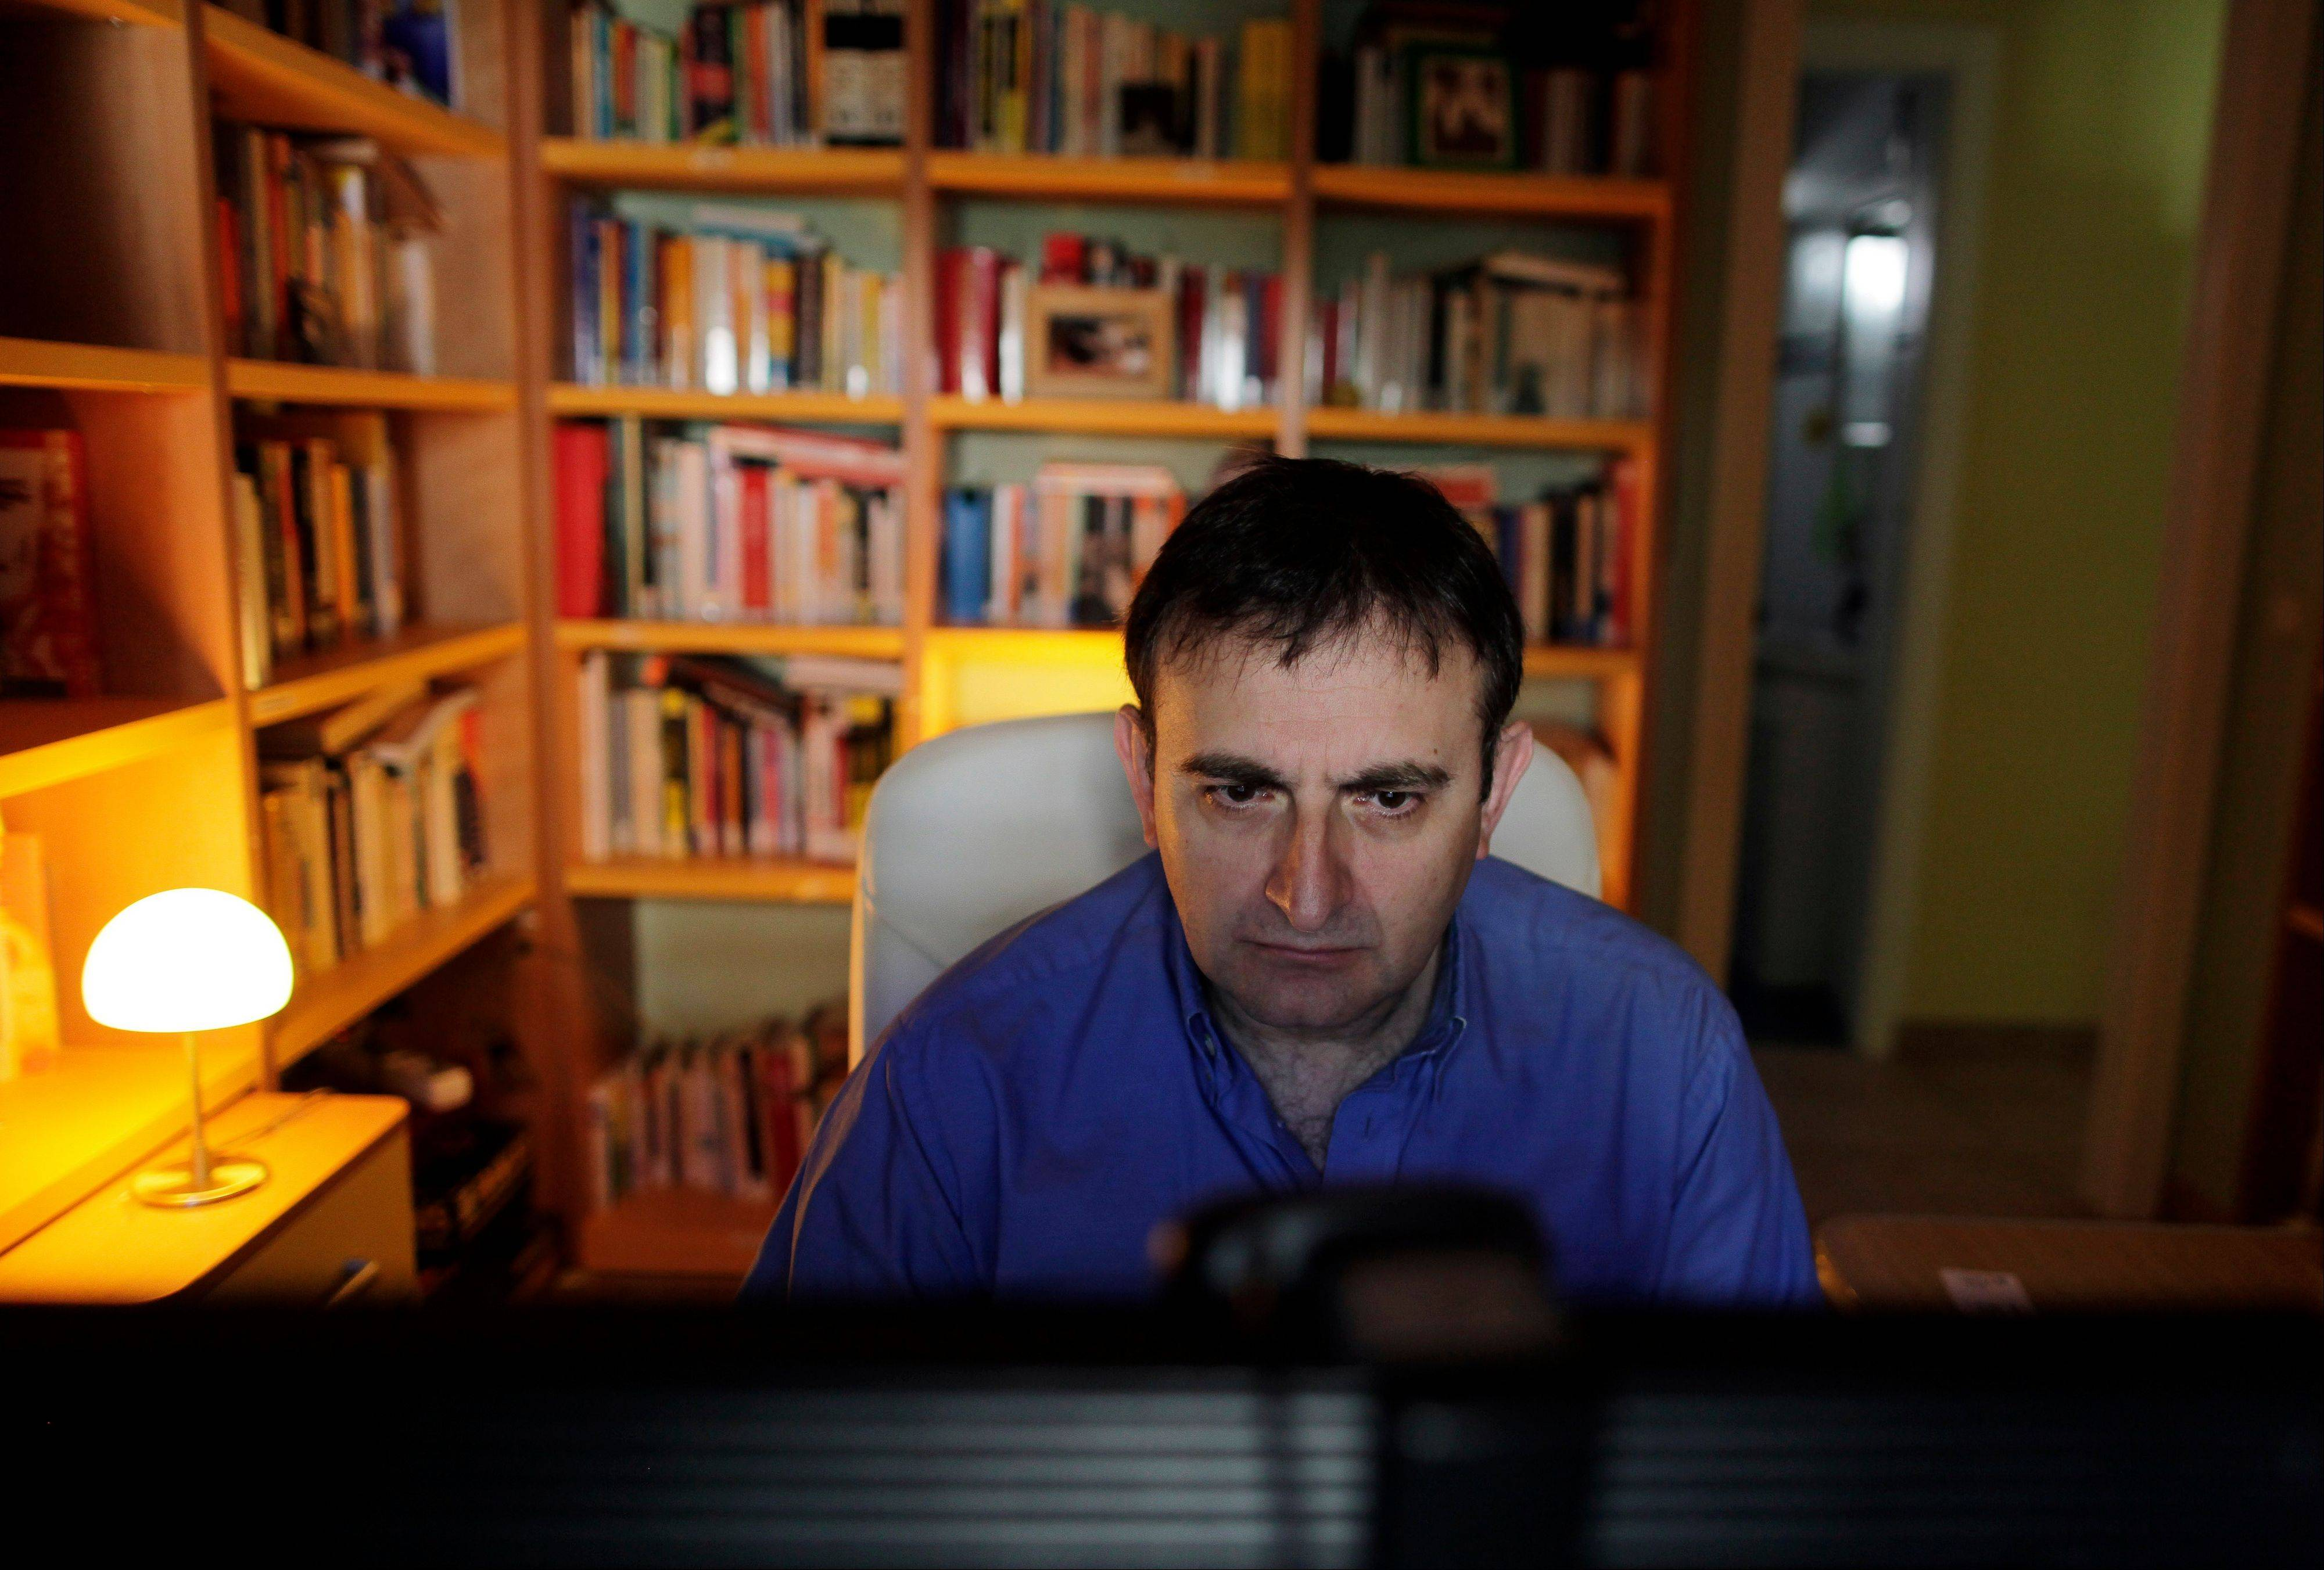 Raul Ramos goes through his online homework during a session of a massive online class in Madrid.